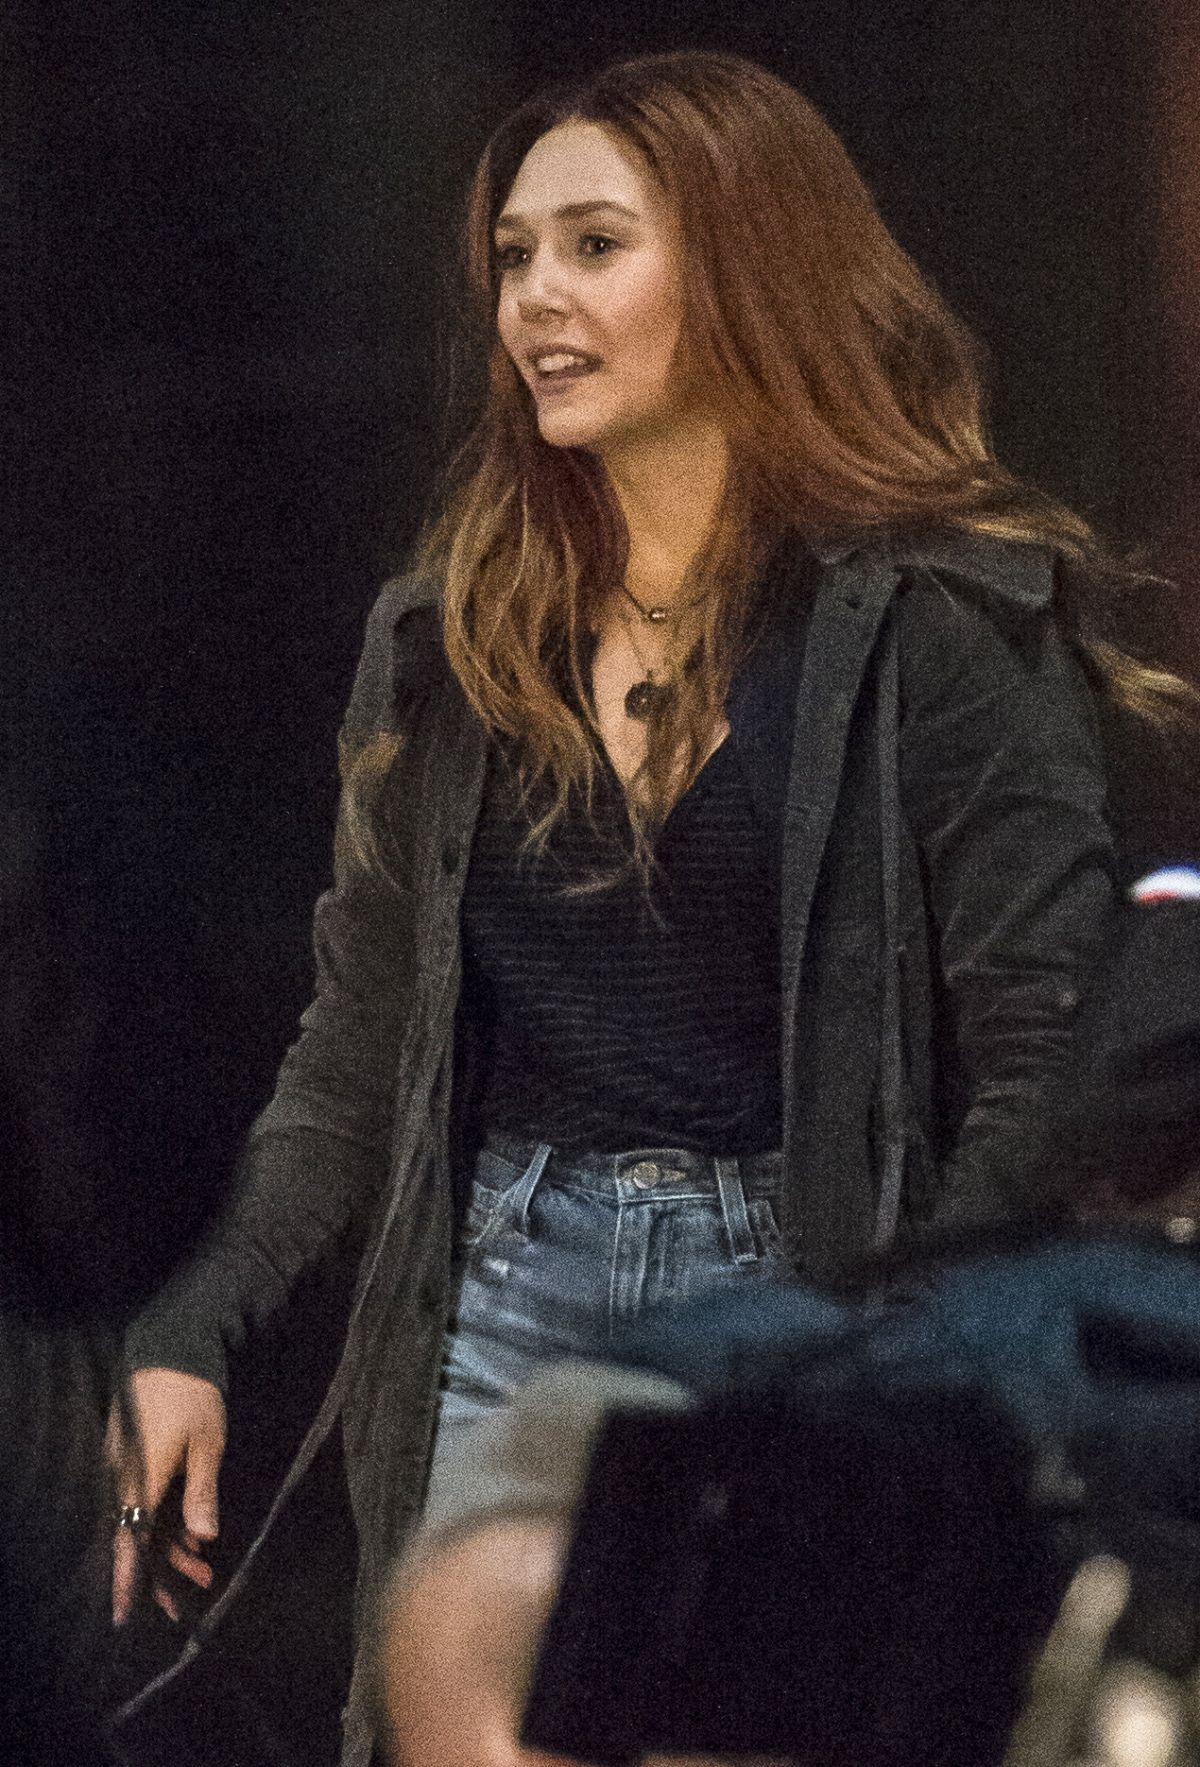 ELIZABETH OLSEN on the Set of Avengers: Infinity War 04/01/2017